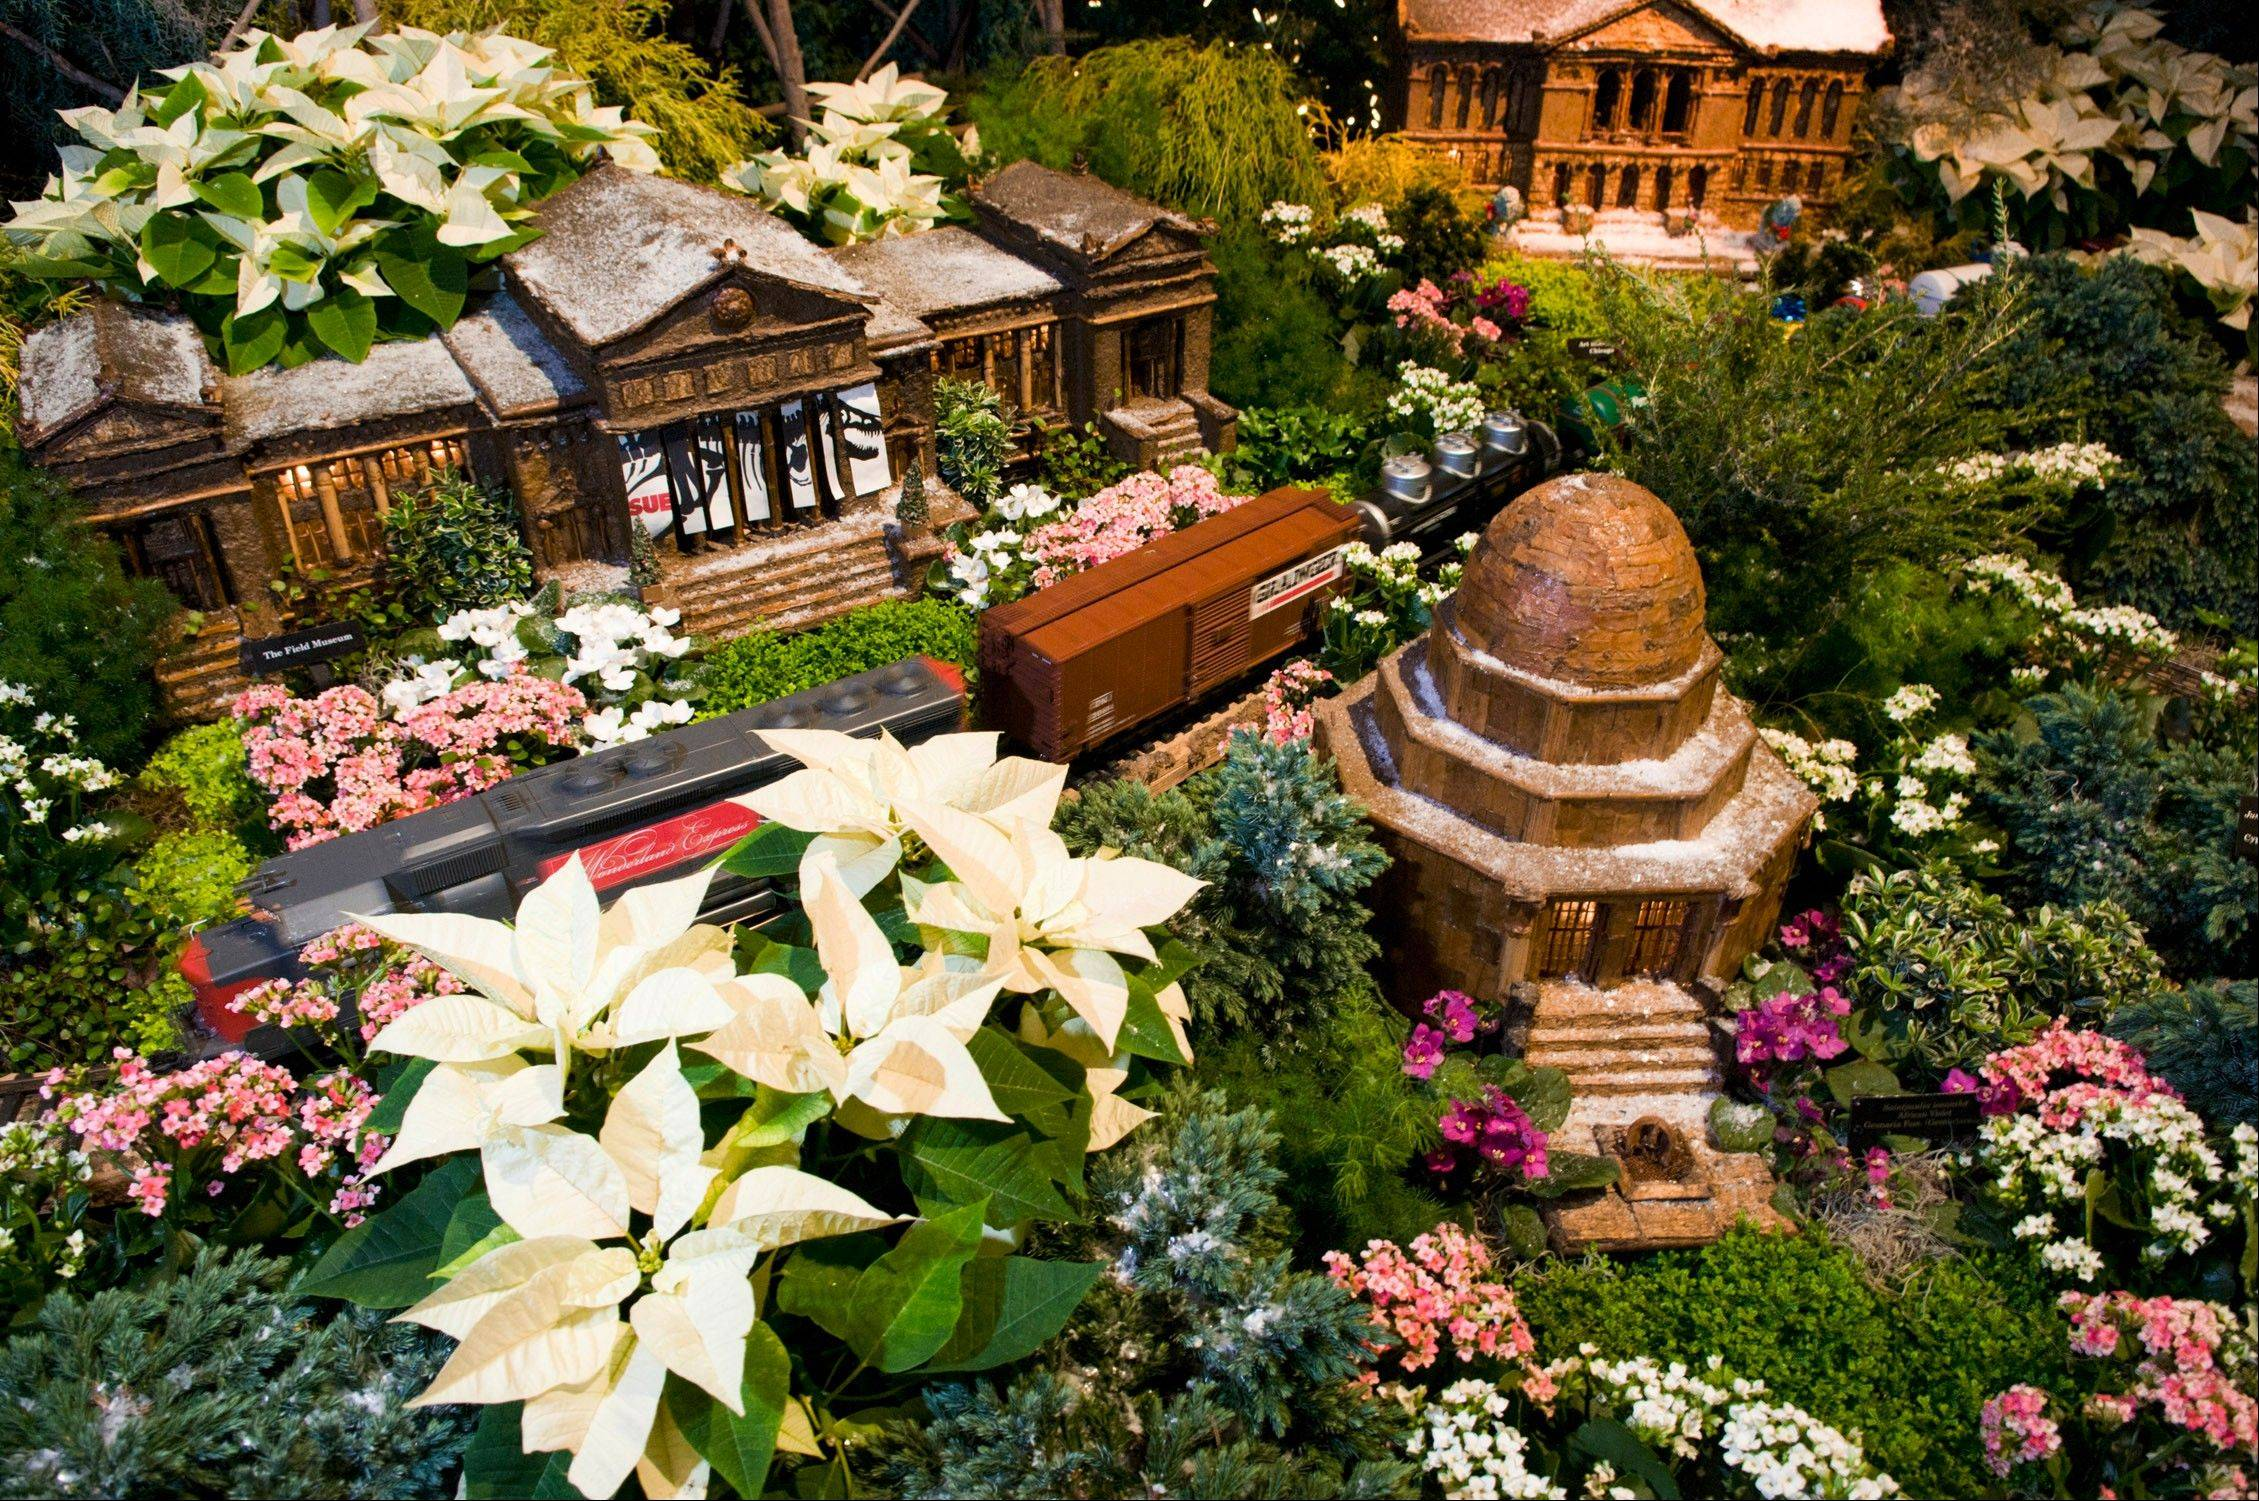 The Wonderland Express winds it way through the display at the Chicago Botanic Garden in Glencoe.